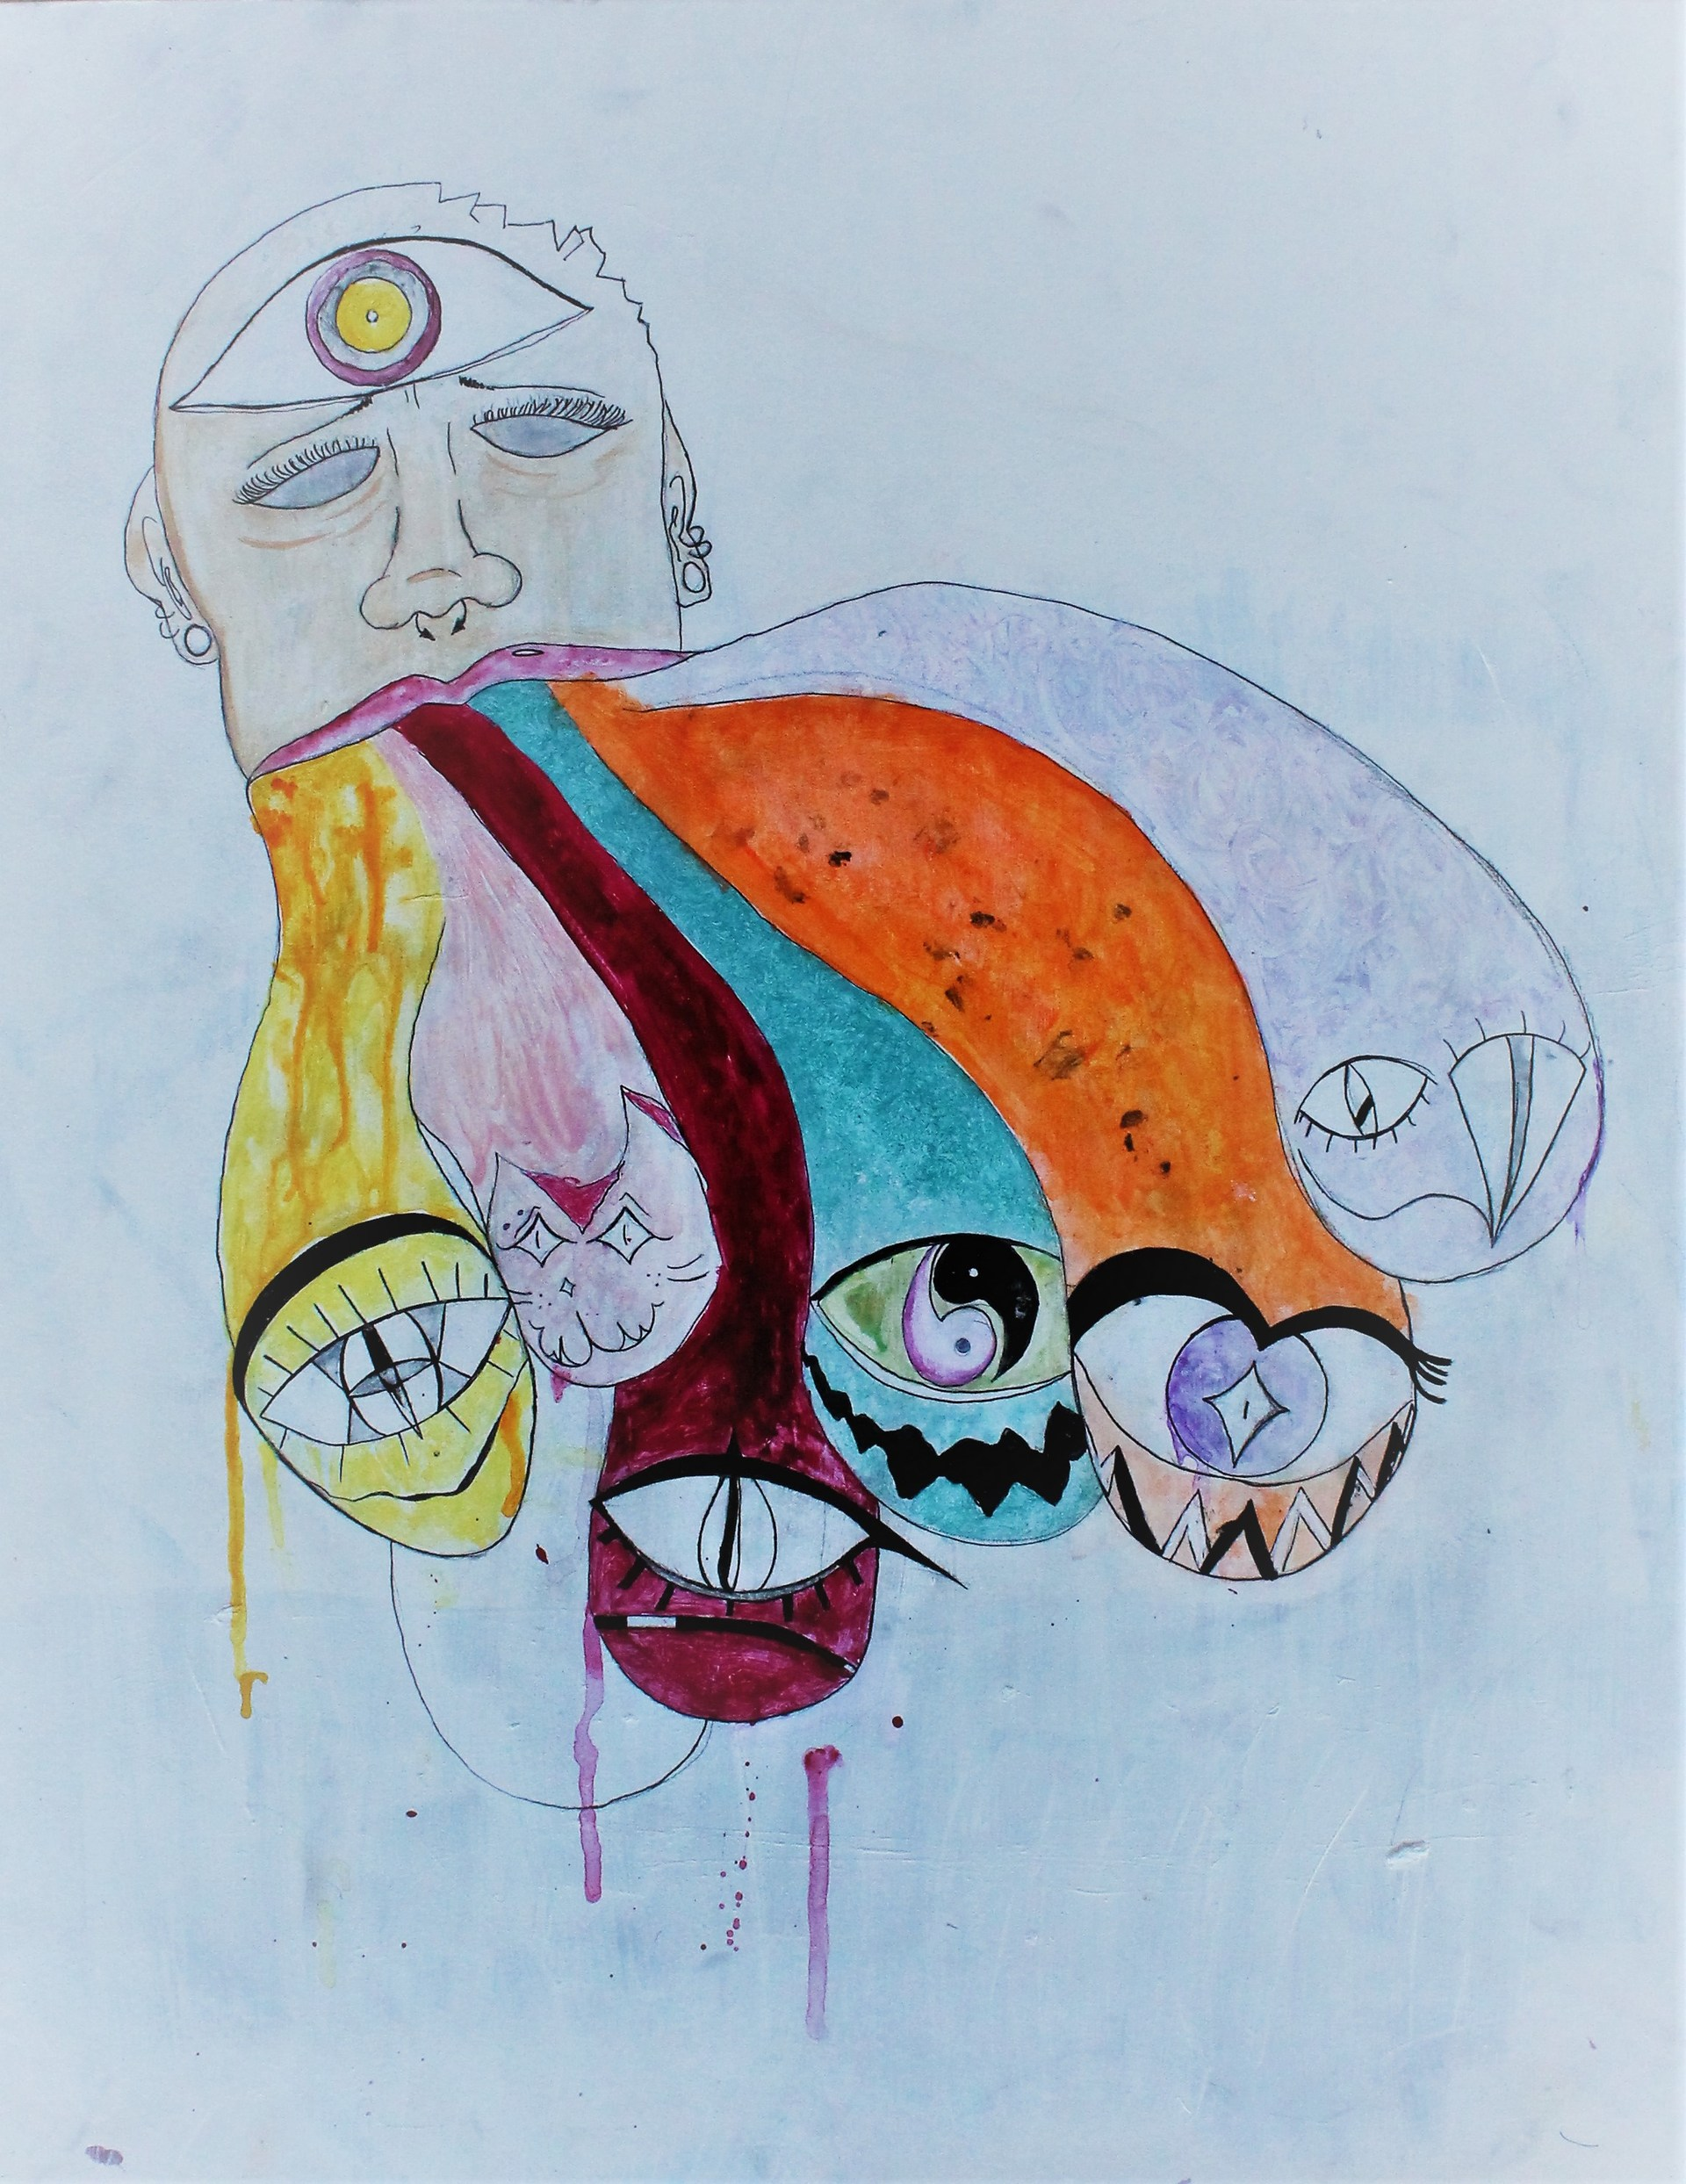 Student Artwork-Painting of colorful monsters dripping out of a person's mouth